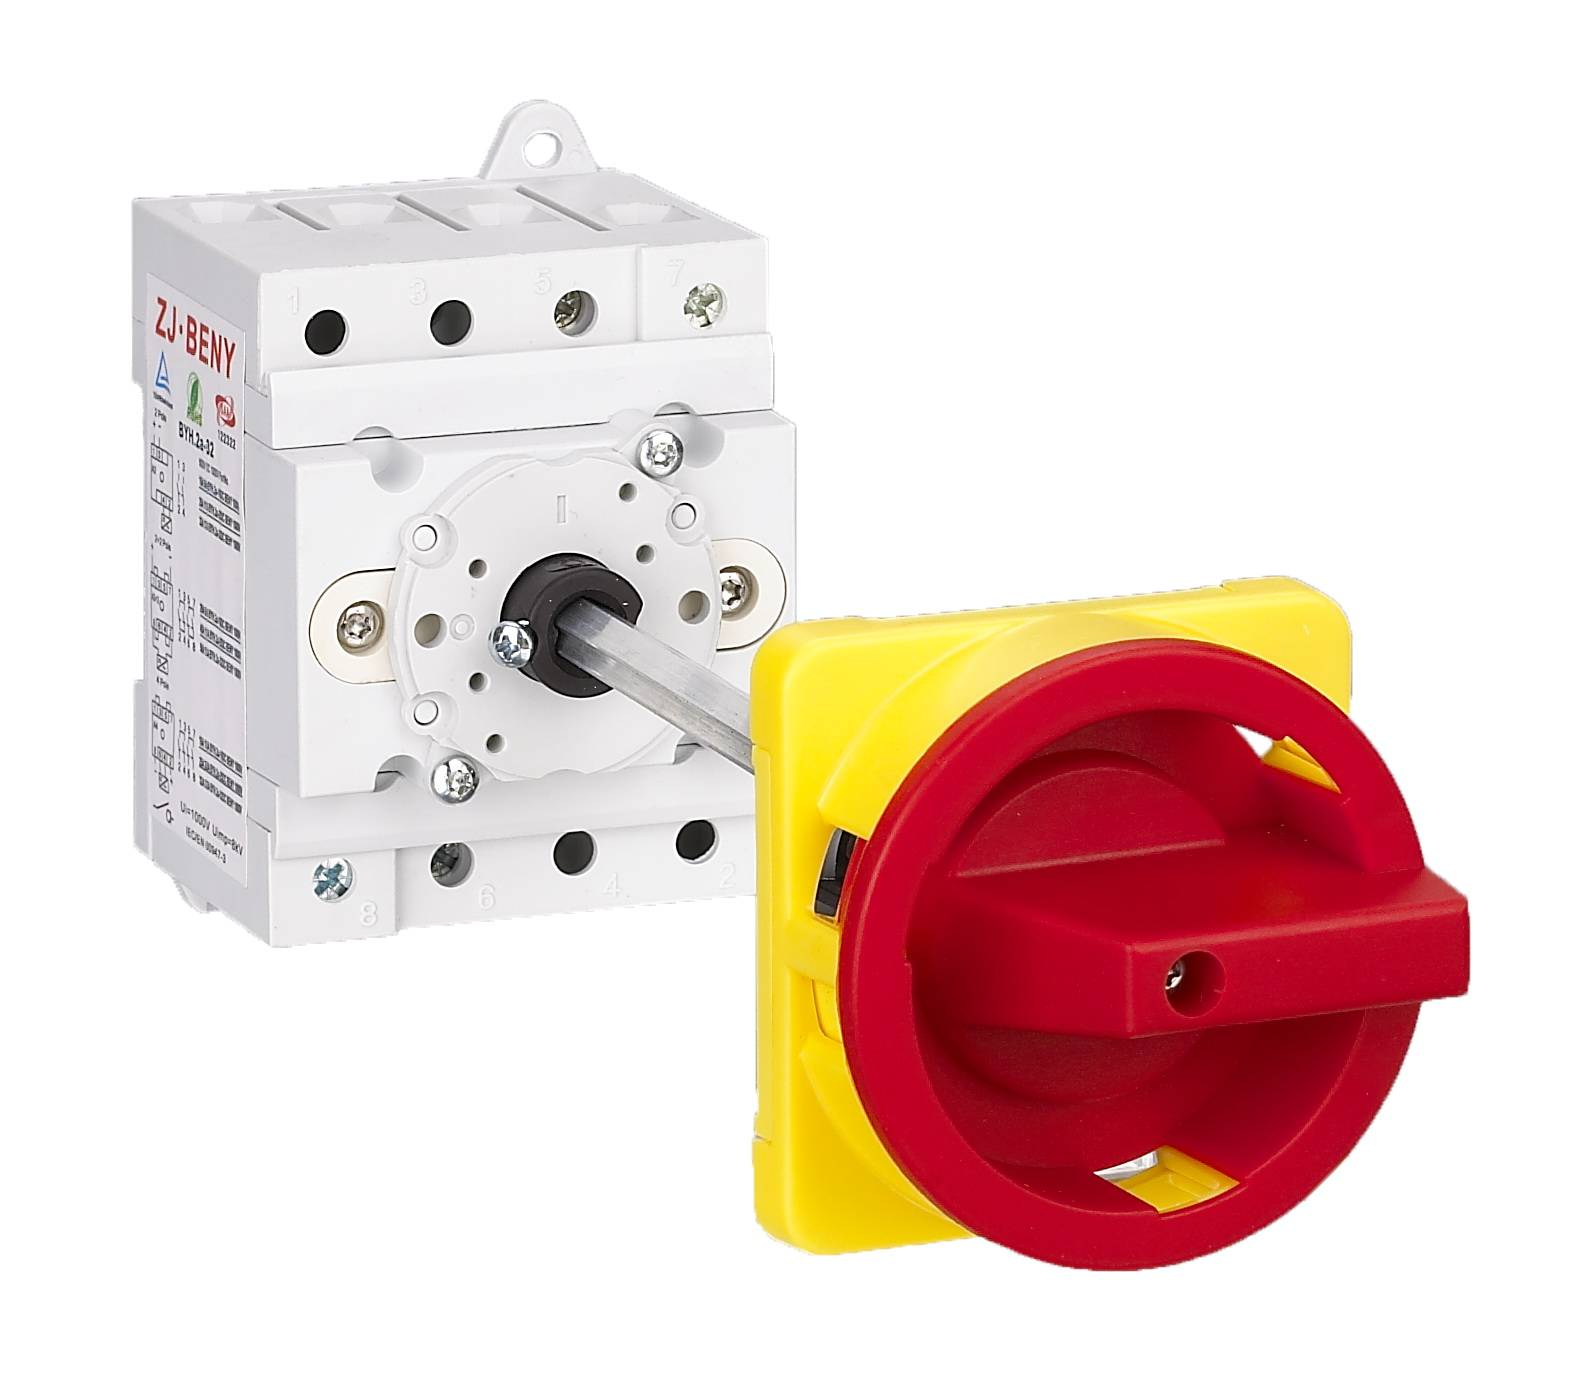 Sell DC isolator switch for Photovoltaic